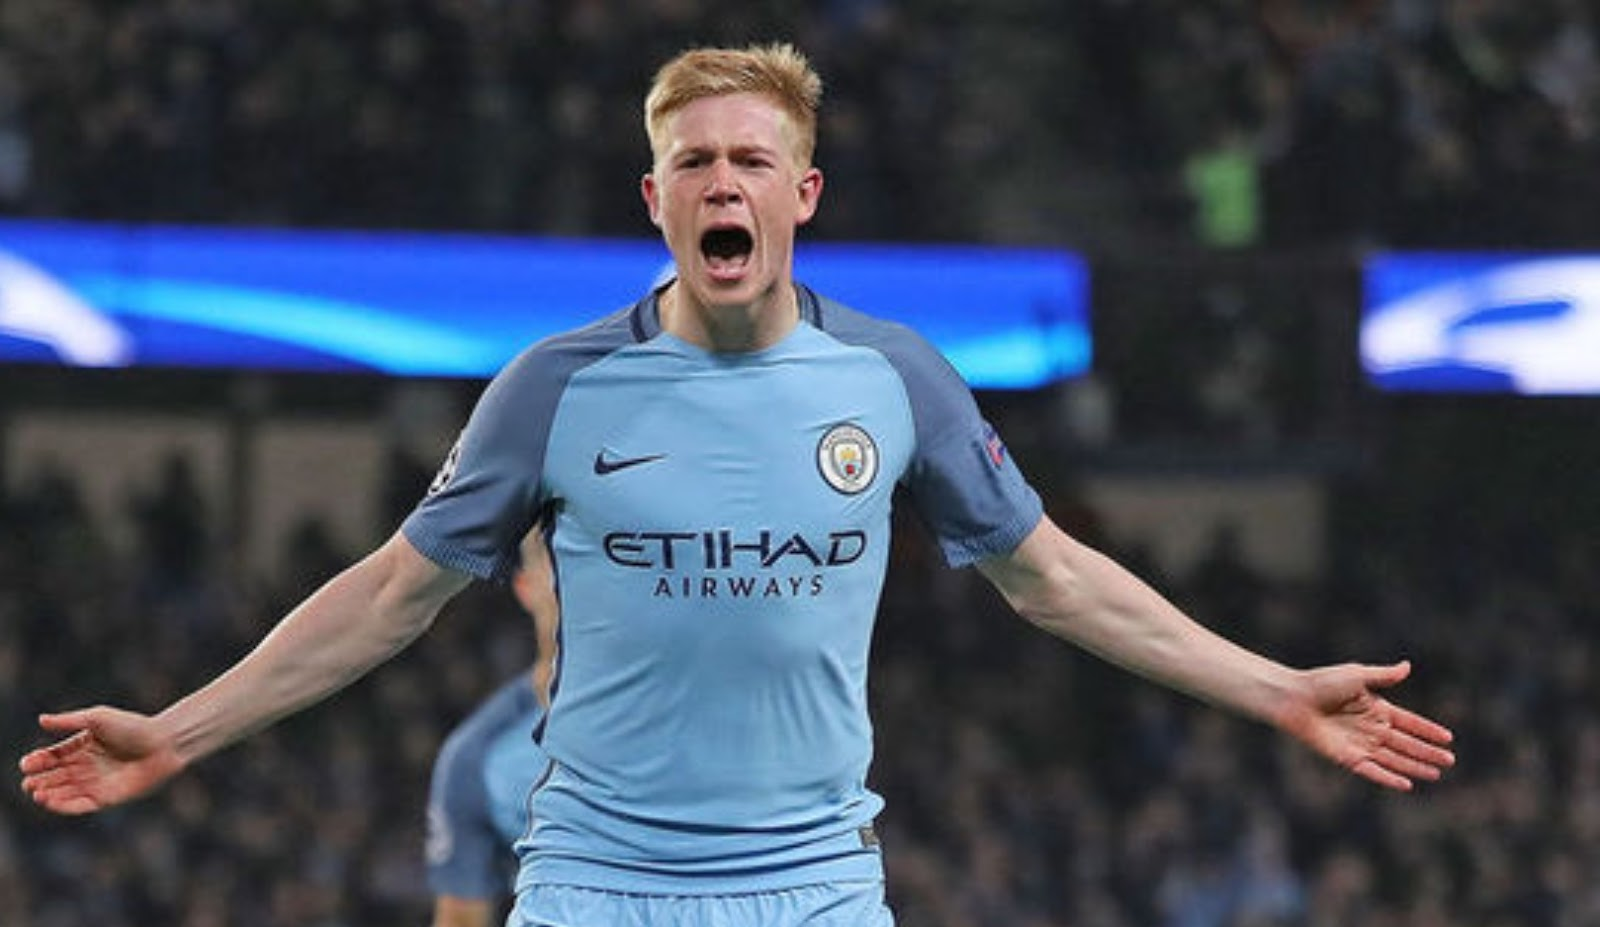 De Bruyne is expensive man city signing of all time